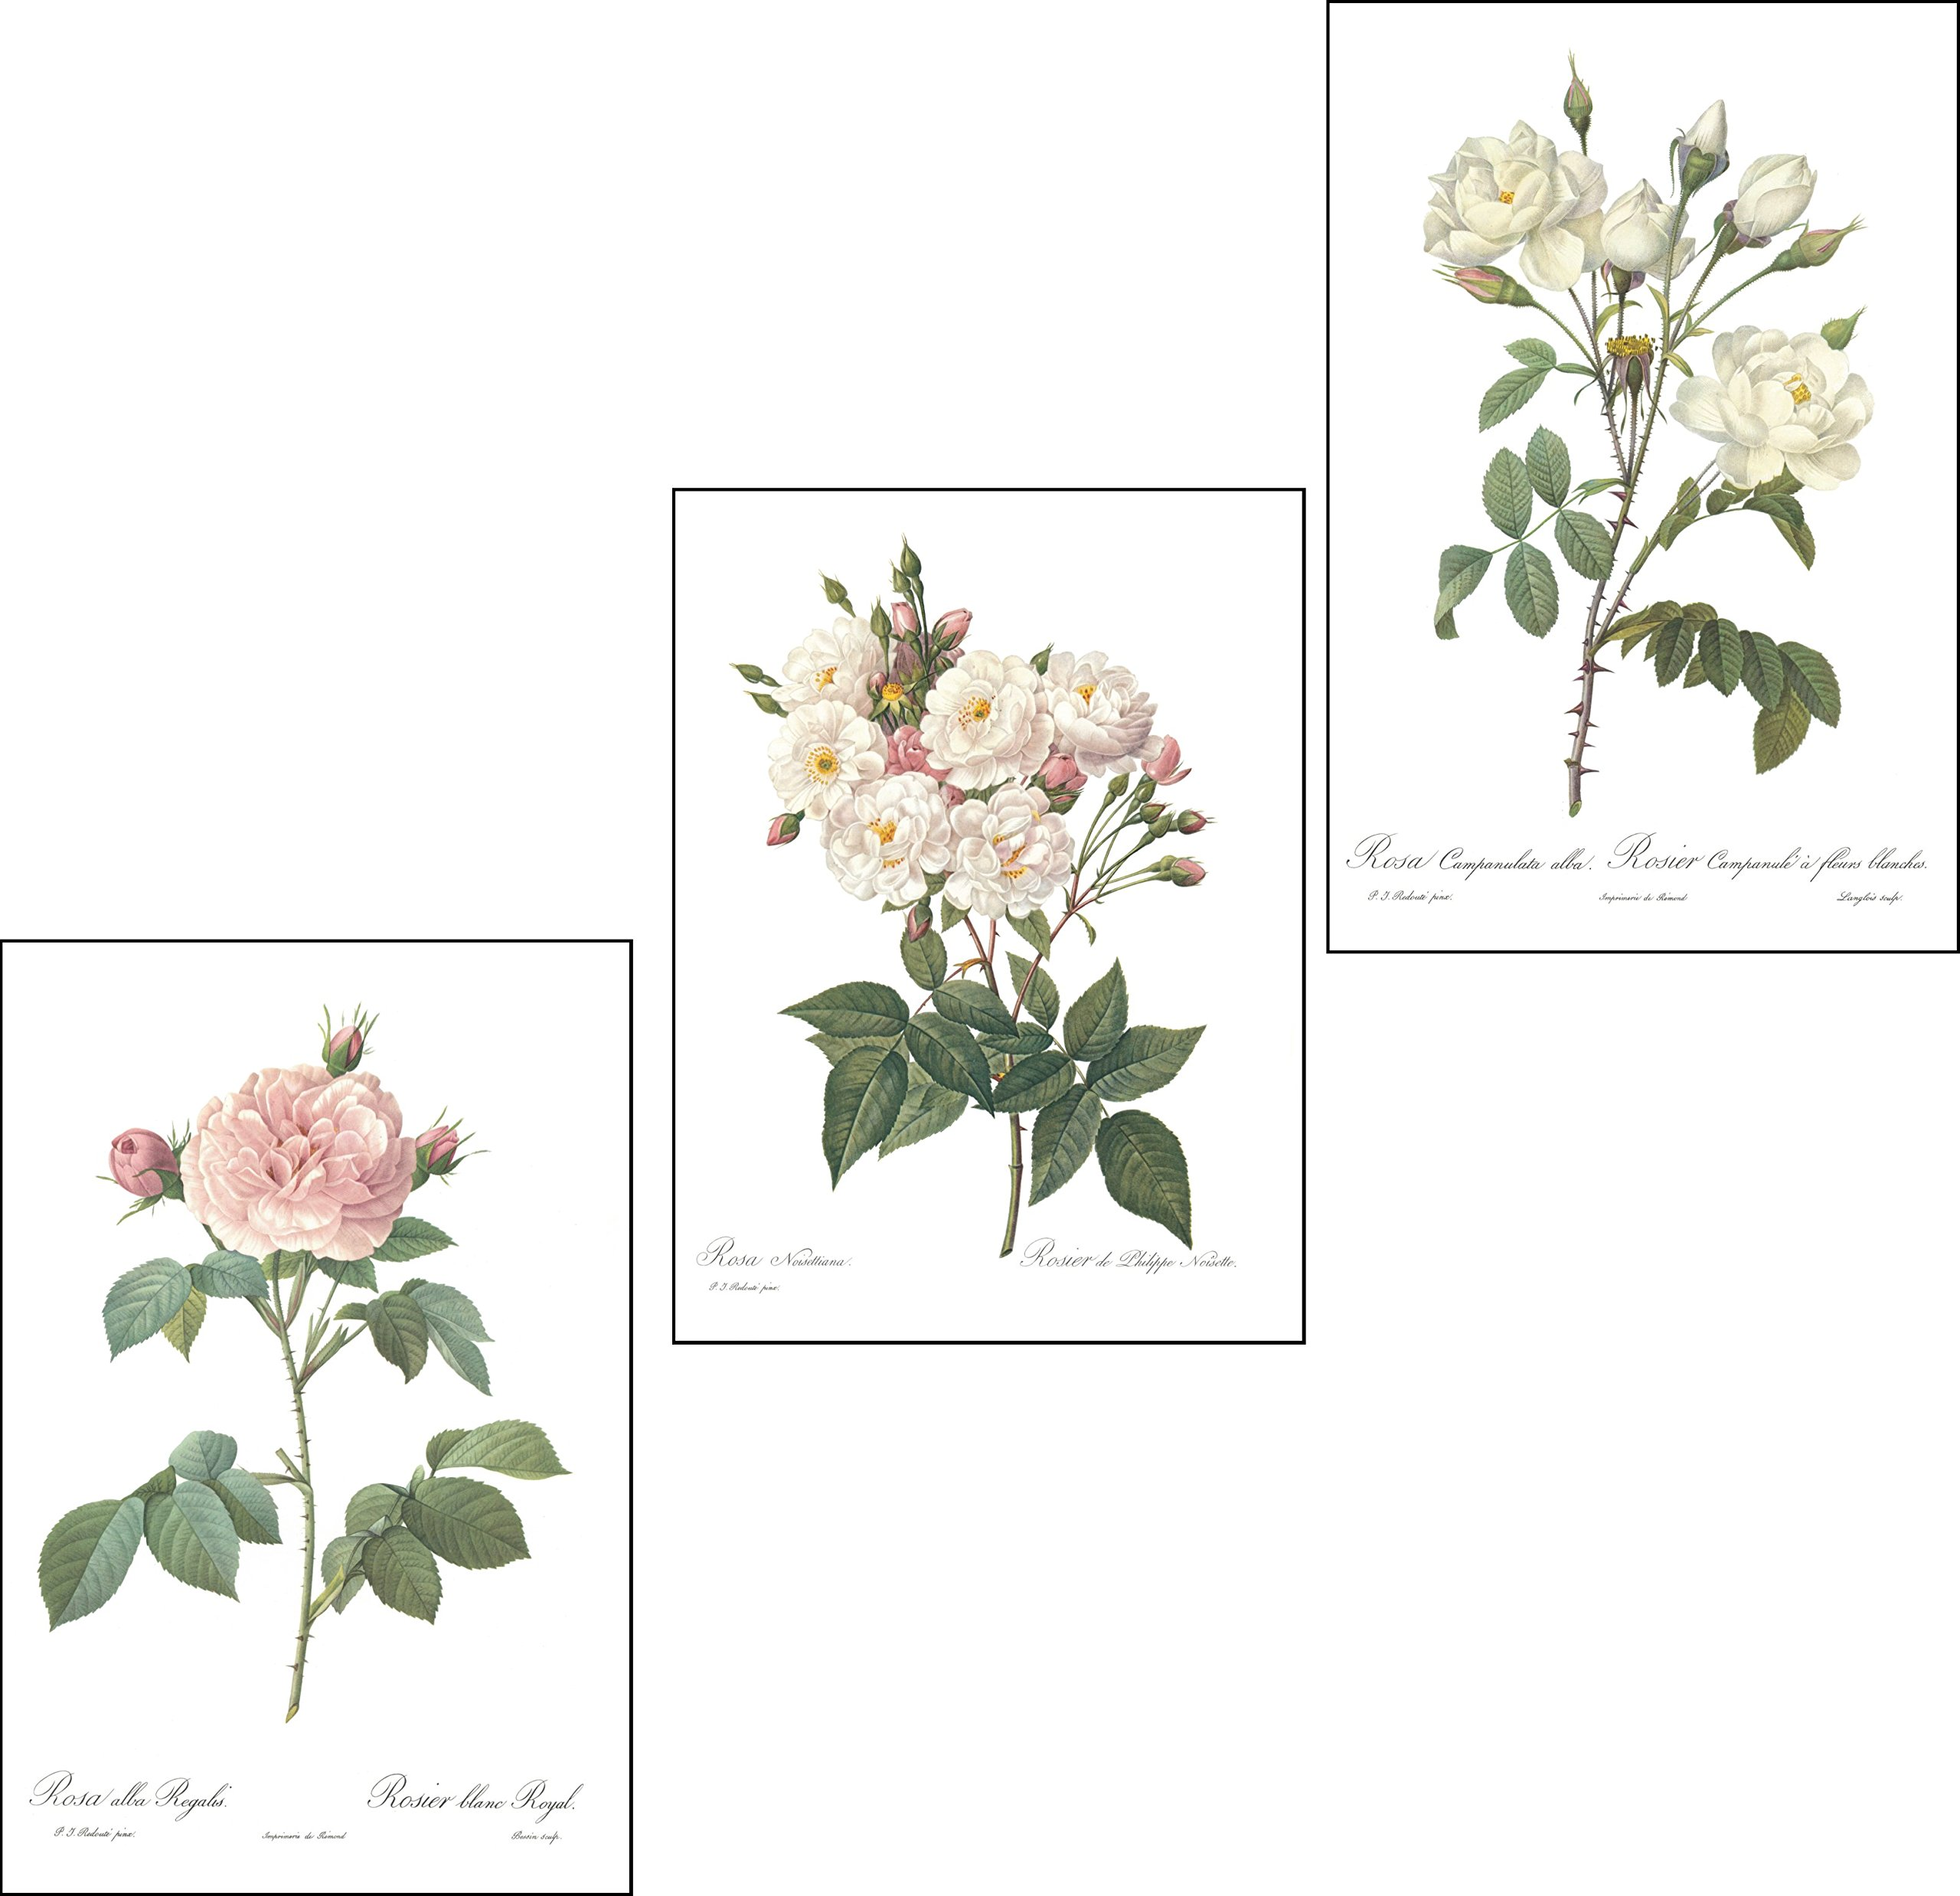 Ink Inc. Set of 3 Botanical Prints, White Home Decor, Redoute Roses, Unframed Wall Art 8x10 inch by Ink Inc.